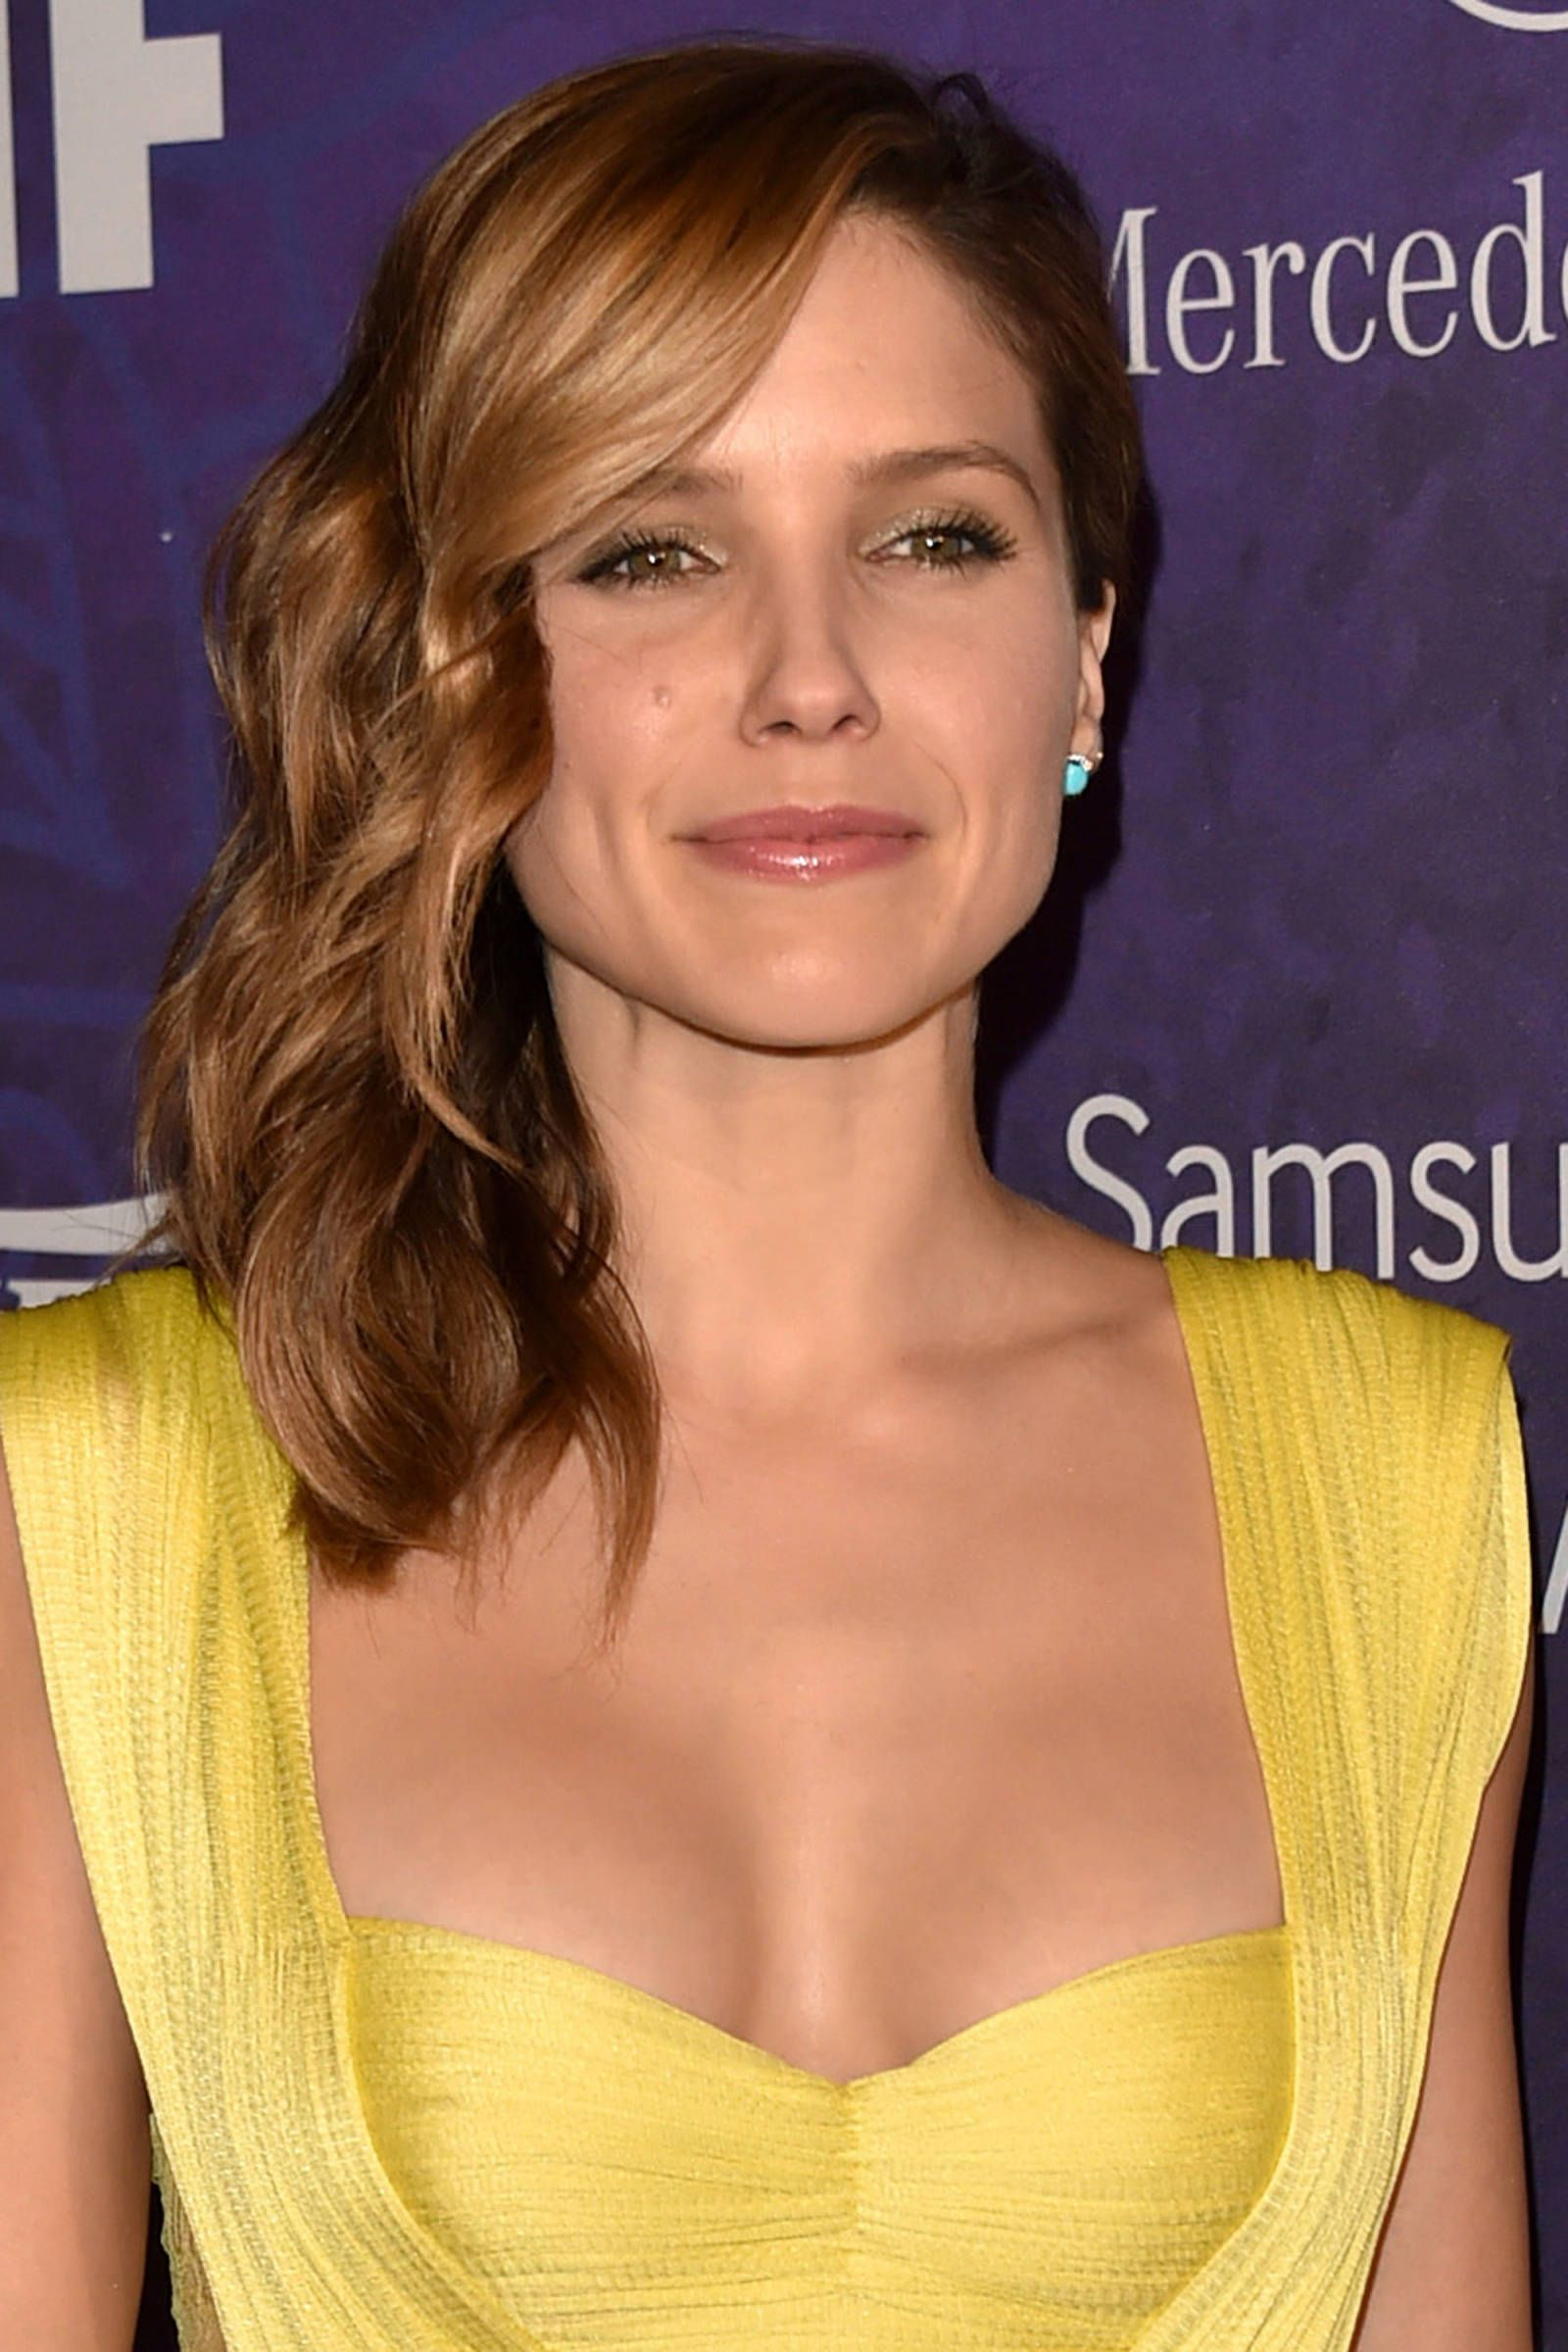 Sophia bush shows boobs